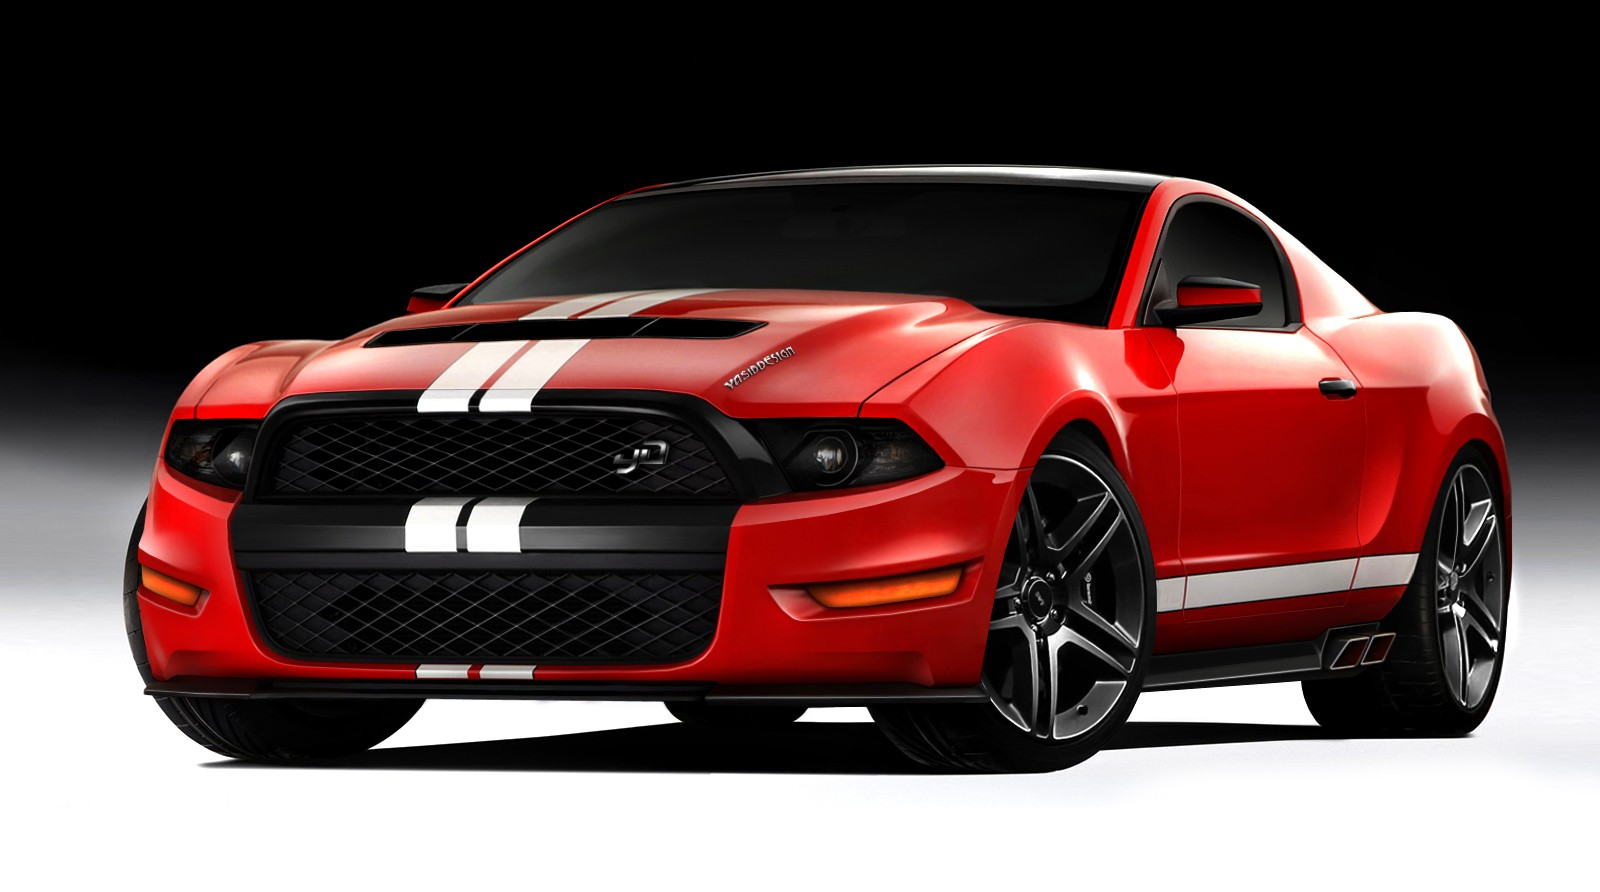 ford mustang wallpaper hd ford mustang wallpaper hd 1600x892